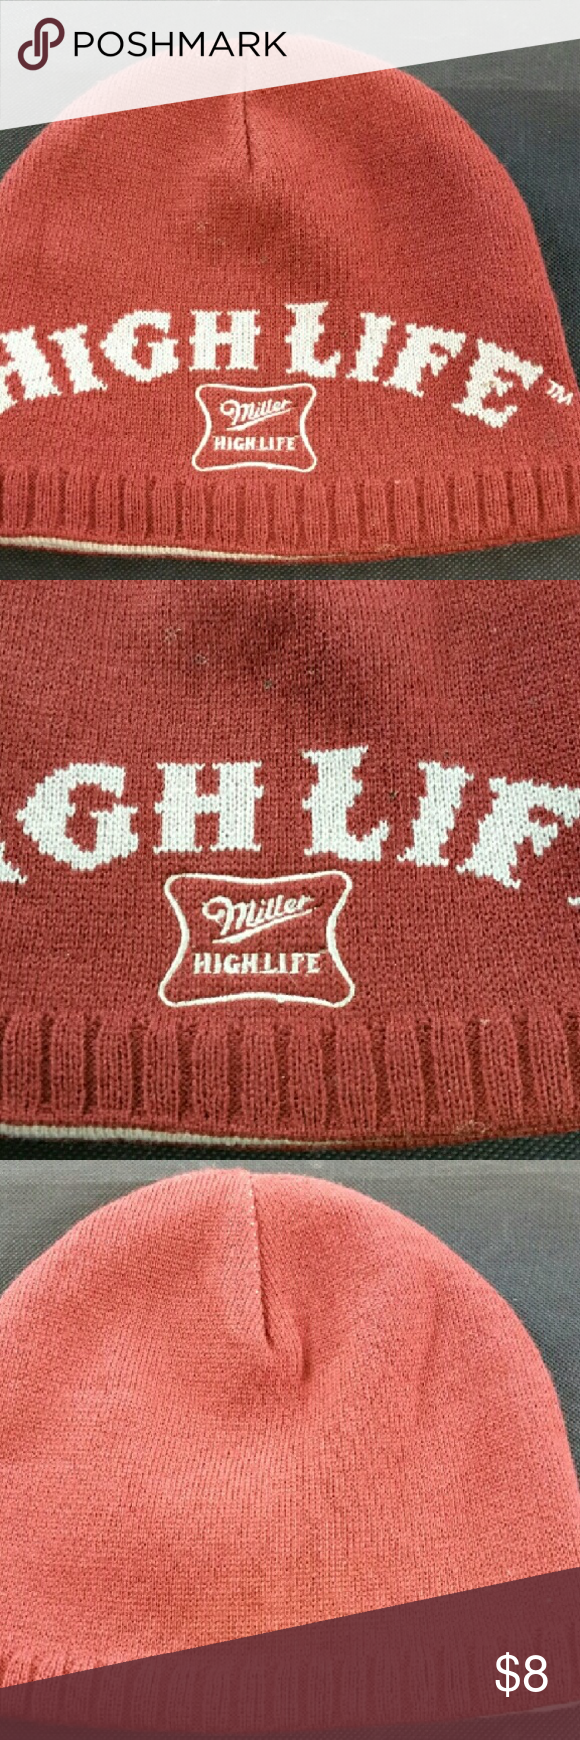 36505f20fa959 Bio-domes burgandy miller high life beanie hat Men s Bio-domes burgandy  miller high life beanie hat. Very well made hat